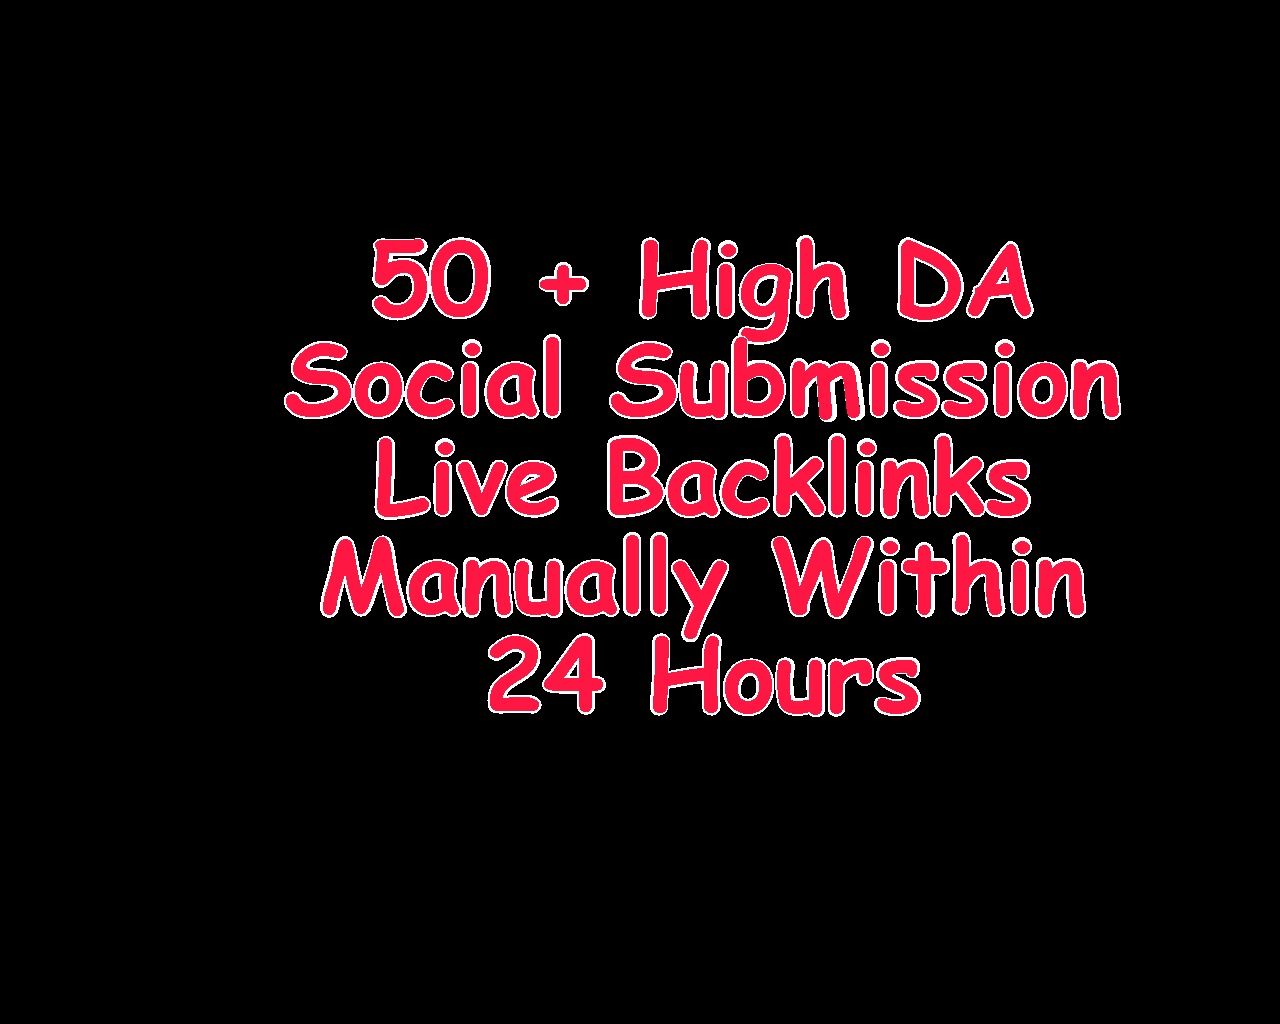 Instant 50 + Live Social Bookmarking Backlink Within 24 Hours Manually